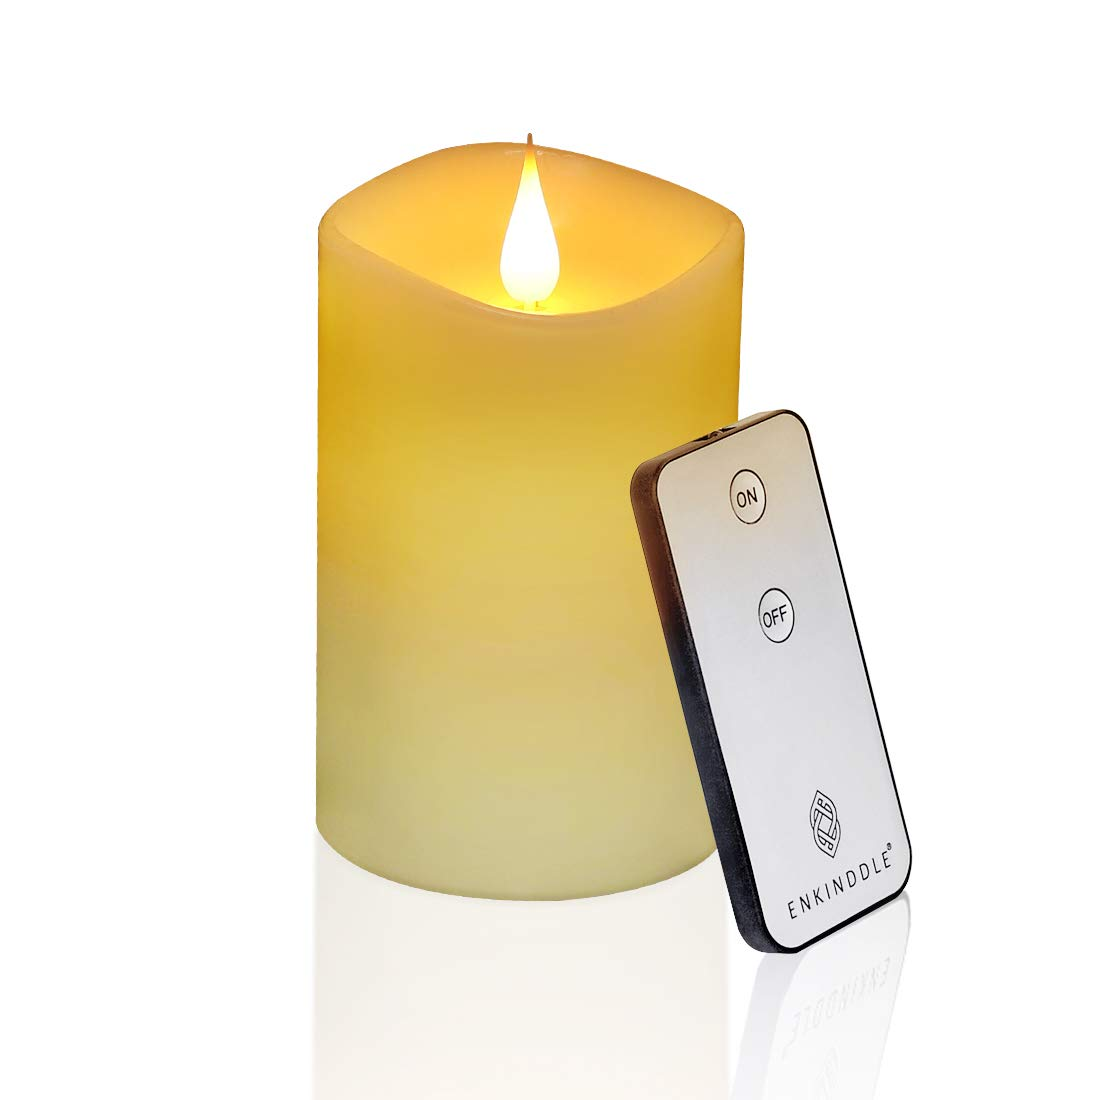 """ENKINDDLE Flameless Candles Swinging 3D Wick Battery Operated Candles 3""""x5"""" Scented LED Ivory Candles Made EU Certified Safe Non Toxic Paraffin Wax Remote Timer 1 Pack 800 Hours"""